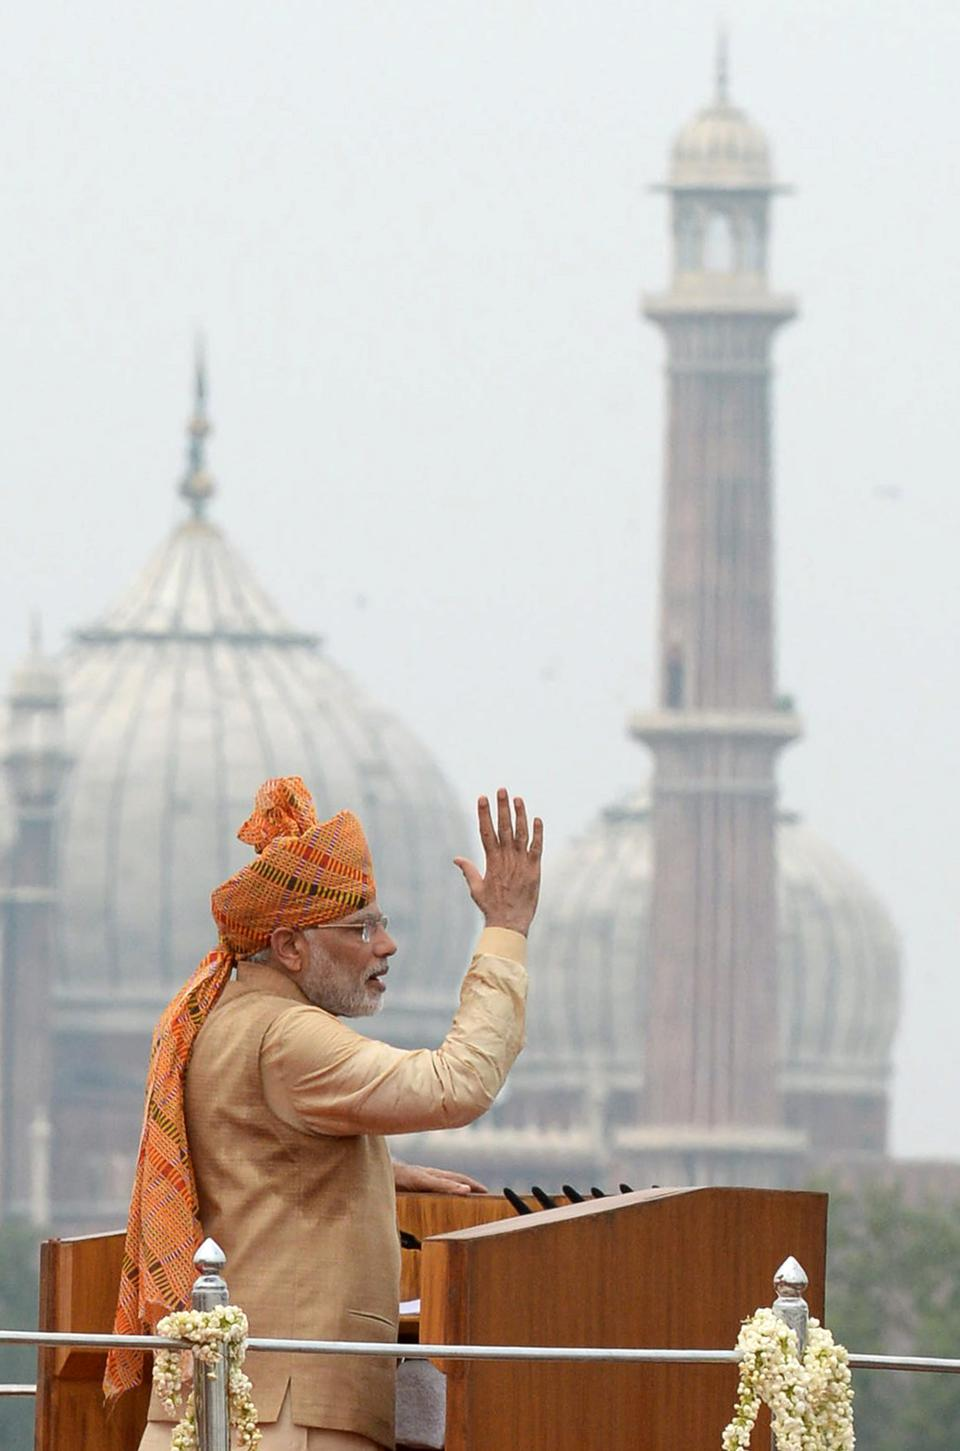 Indian Prime Minister Narendra Modi has made fighting corruption key to his platform. (PRAKASH SINGH/AFP/Getty Images)